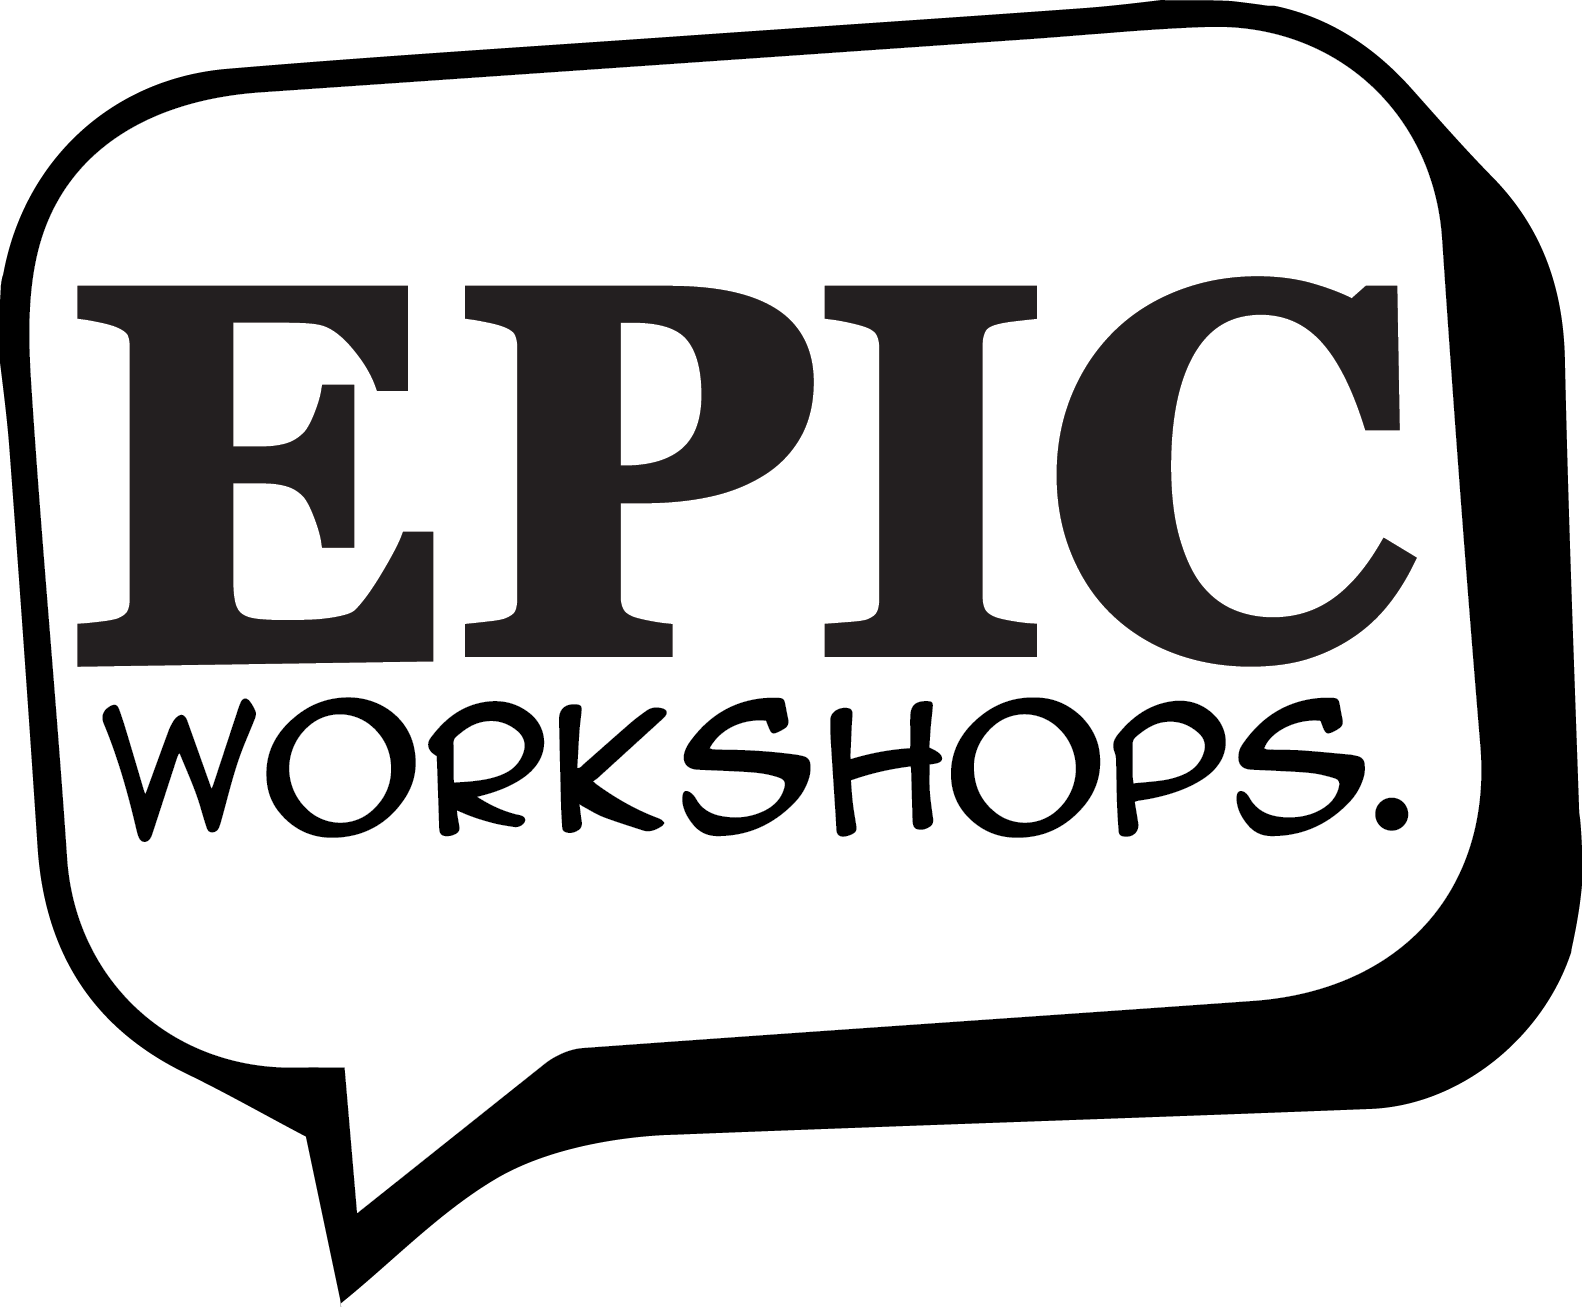 EPIC Workshops: Tote Bag Painting Experience Kit @ $30